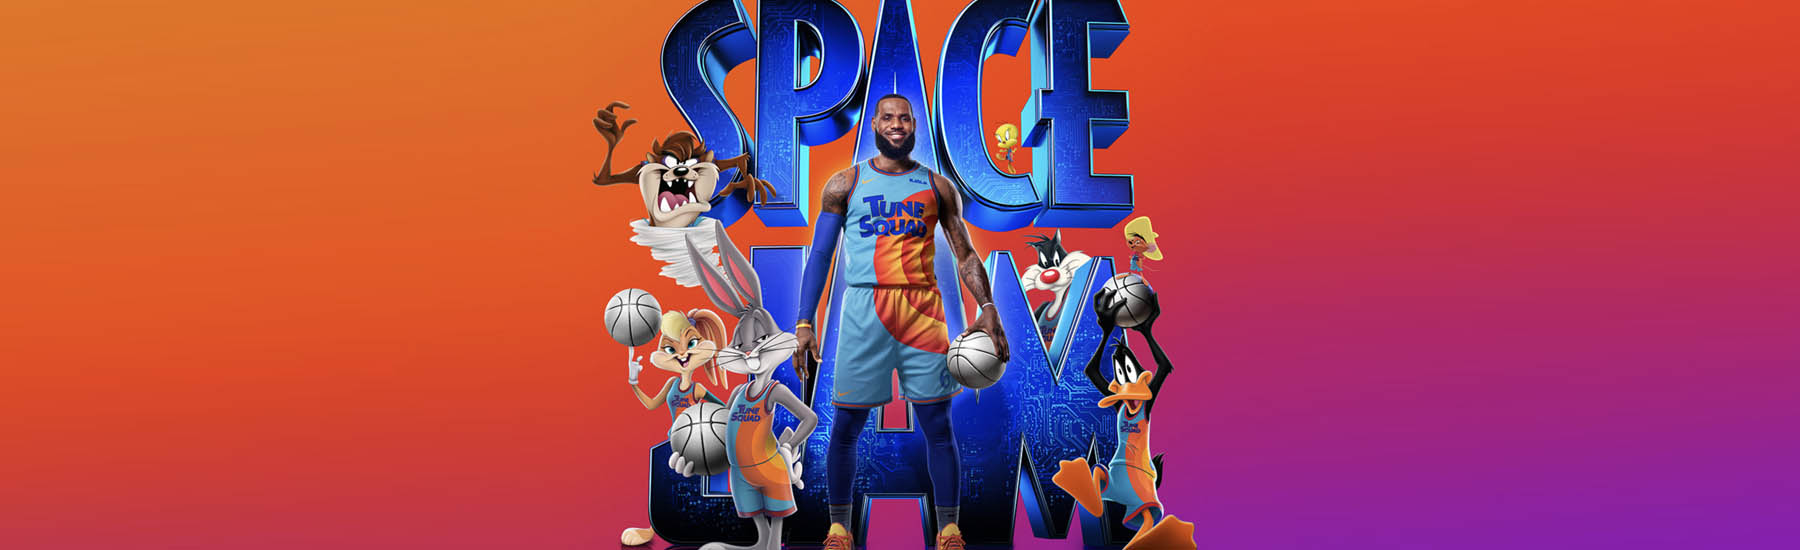 Shop Space Jam: A New Legacy!